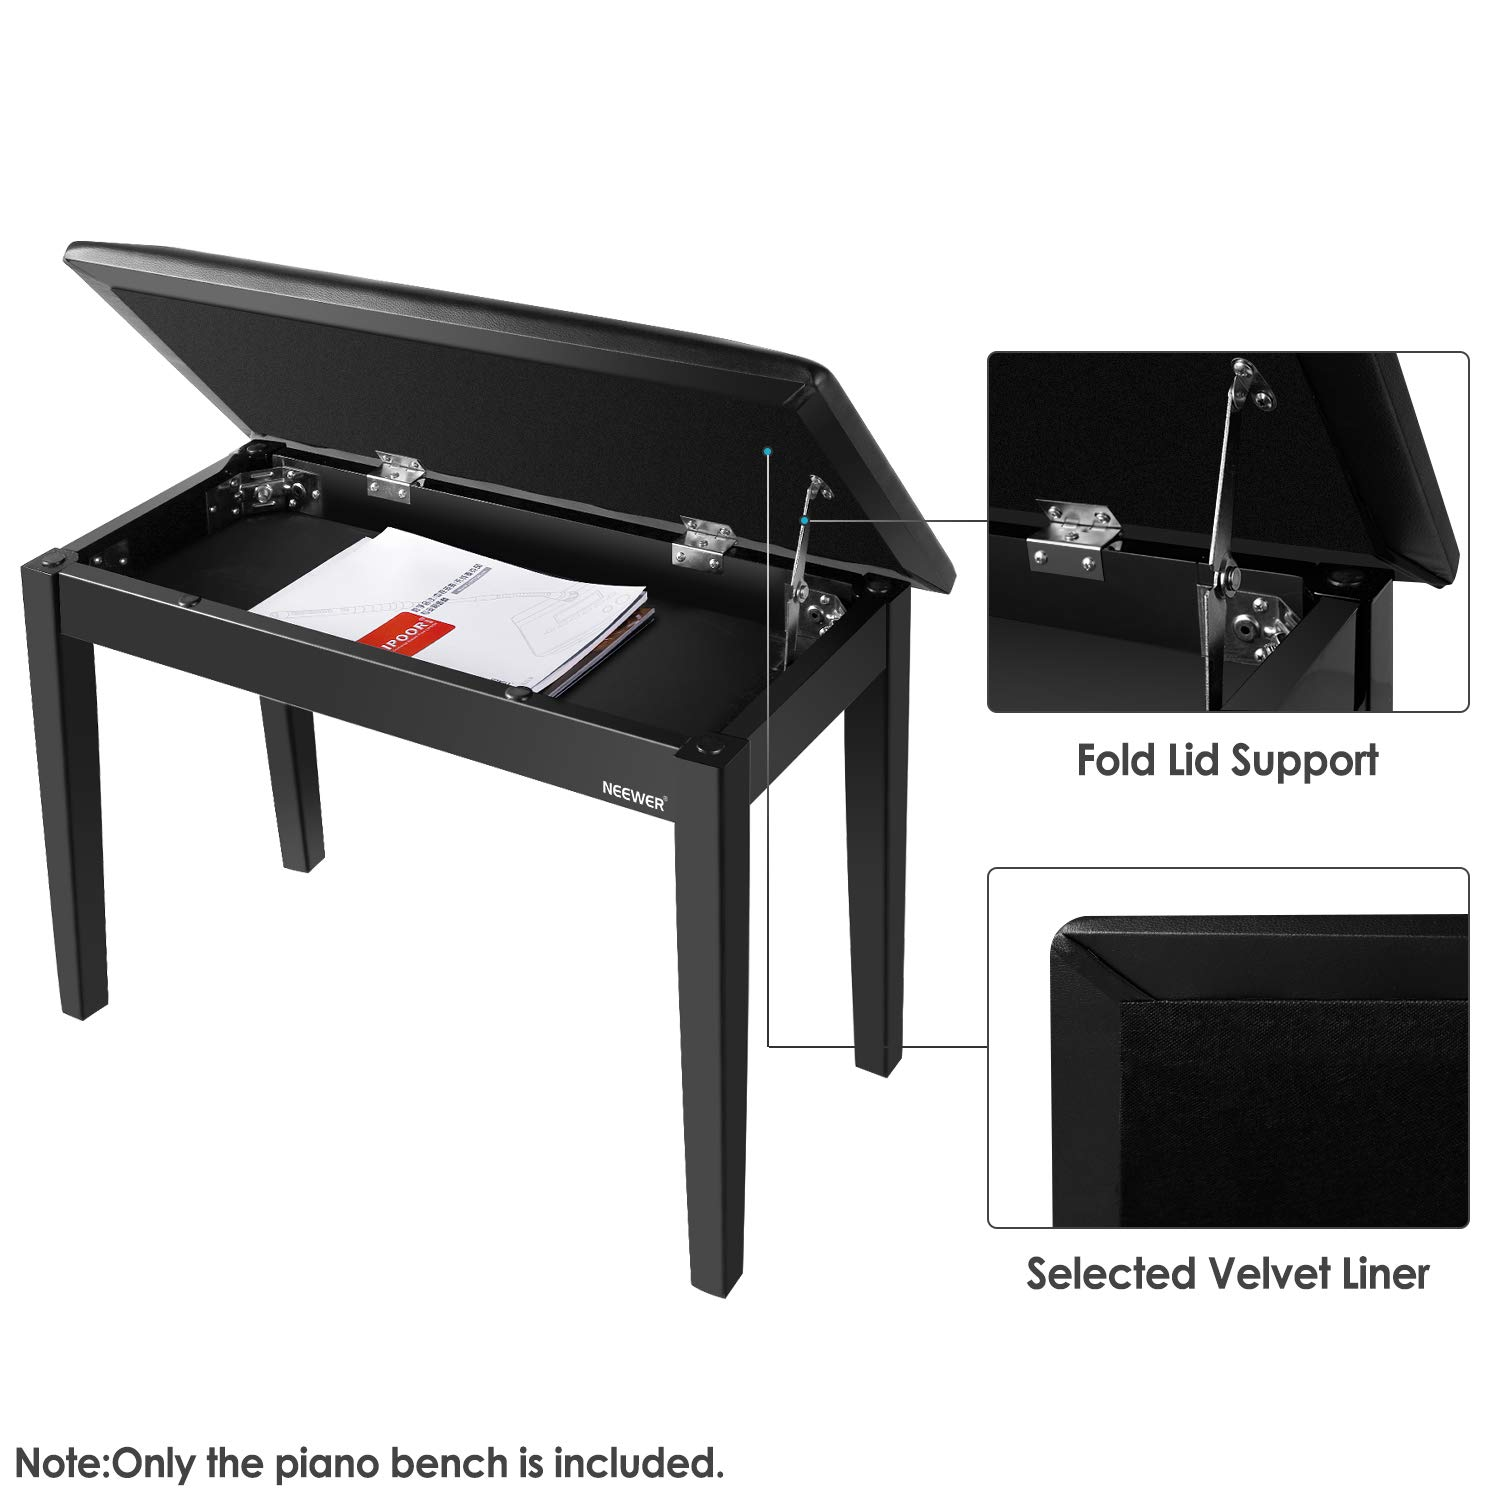 Neewer Wooden Duet Piano Bench with Padded Leather Cushion for Deluxe Comfort and Bulid-in Flip-Top Seat Extra Storage Compartment for Music Books and Other Accessories, Black by Neewer (Image #5)